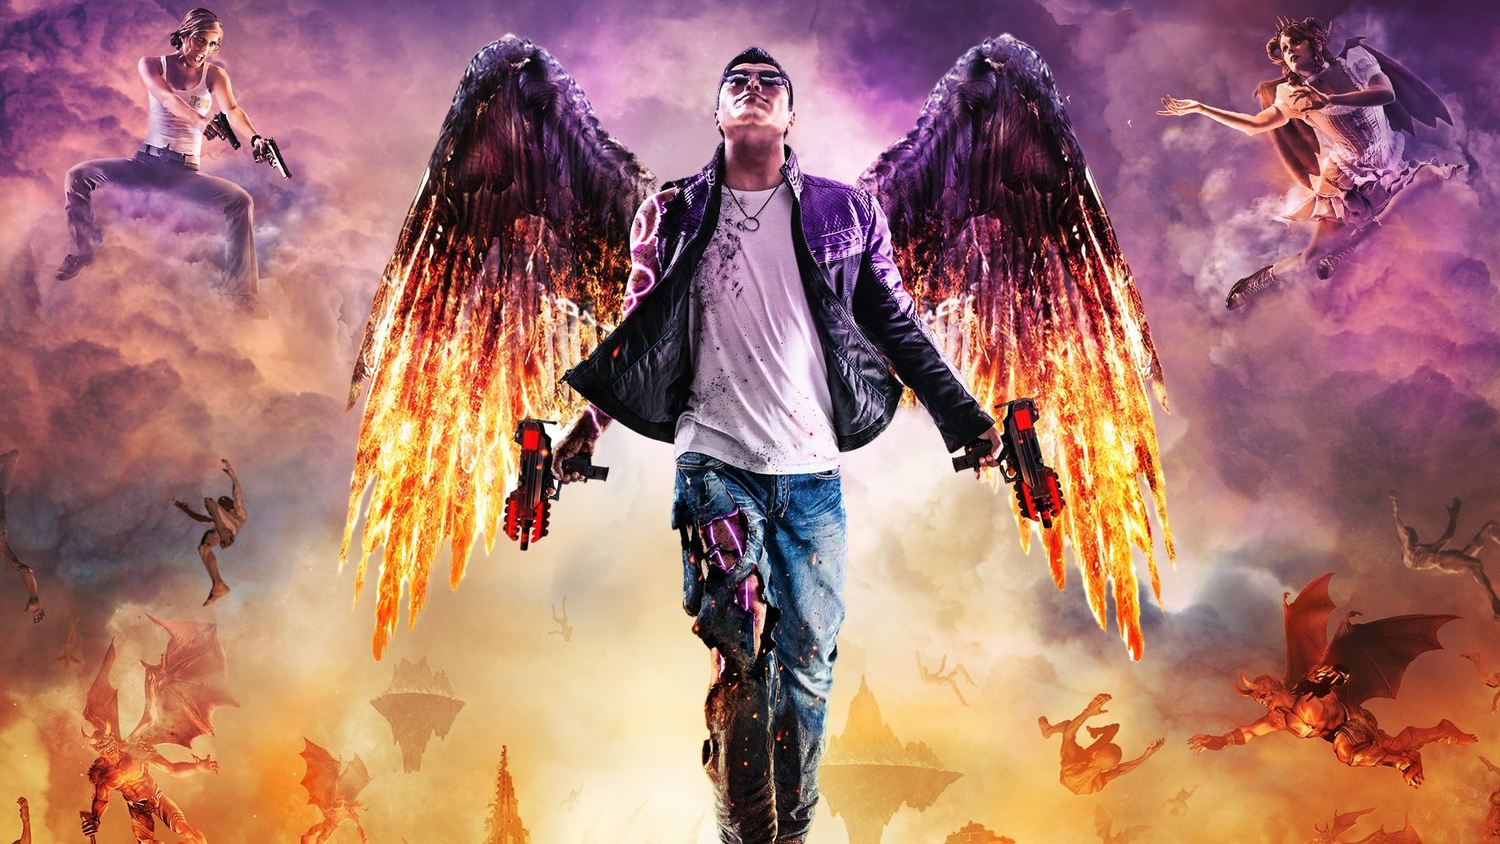 Ps4 Wallpapers For Saints Row 4 Games Opera Wallpapers